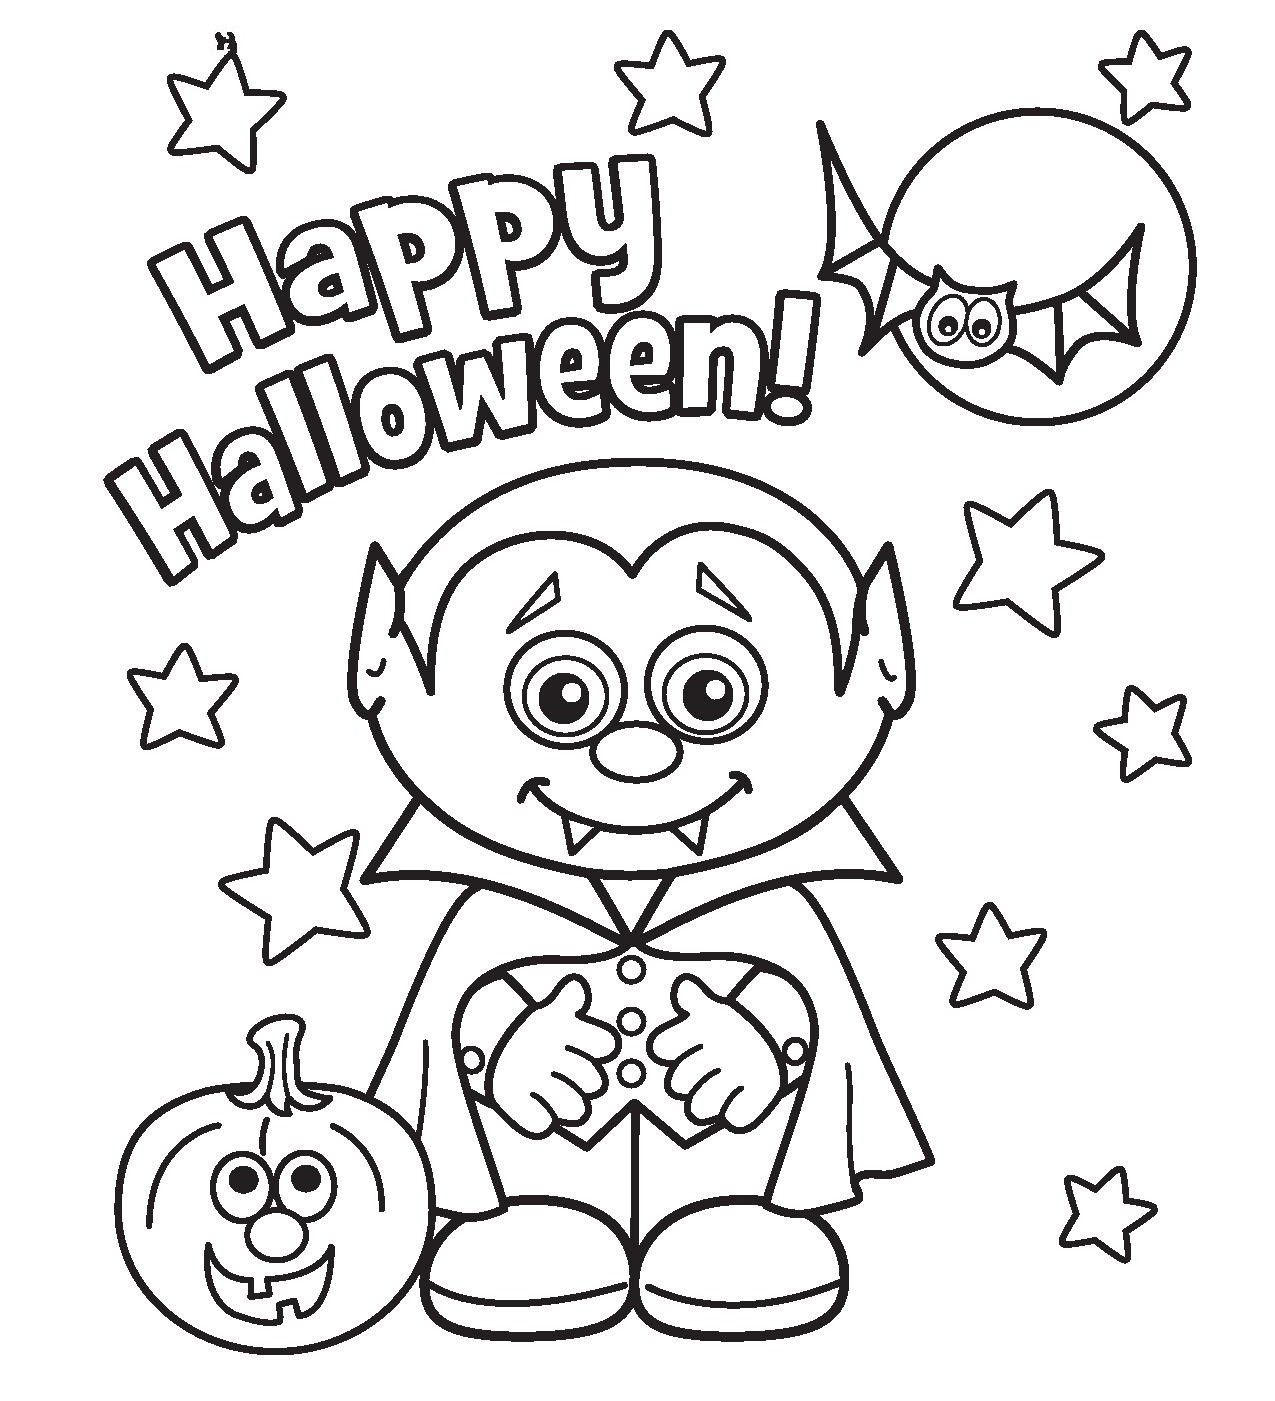 kawaii halloween coloring pages - photo#26